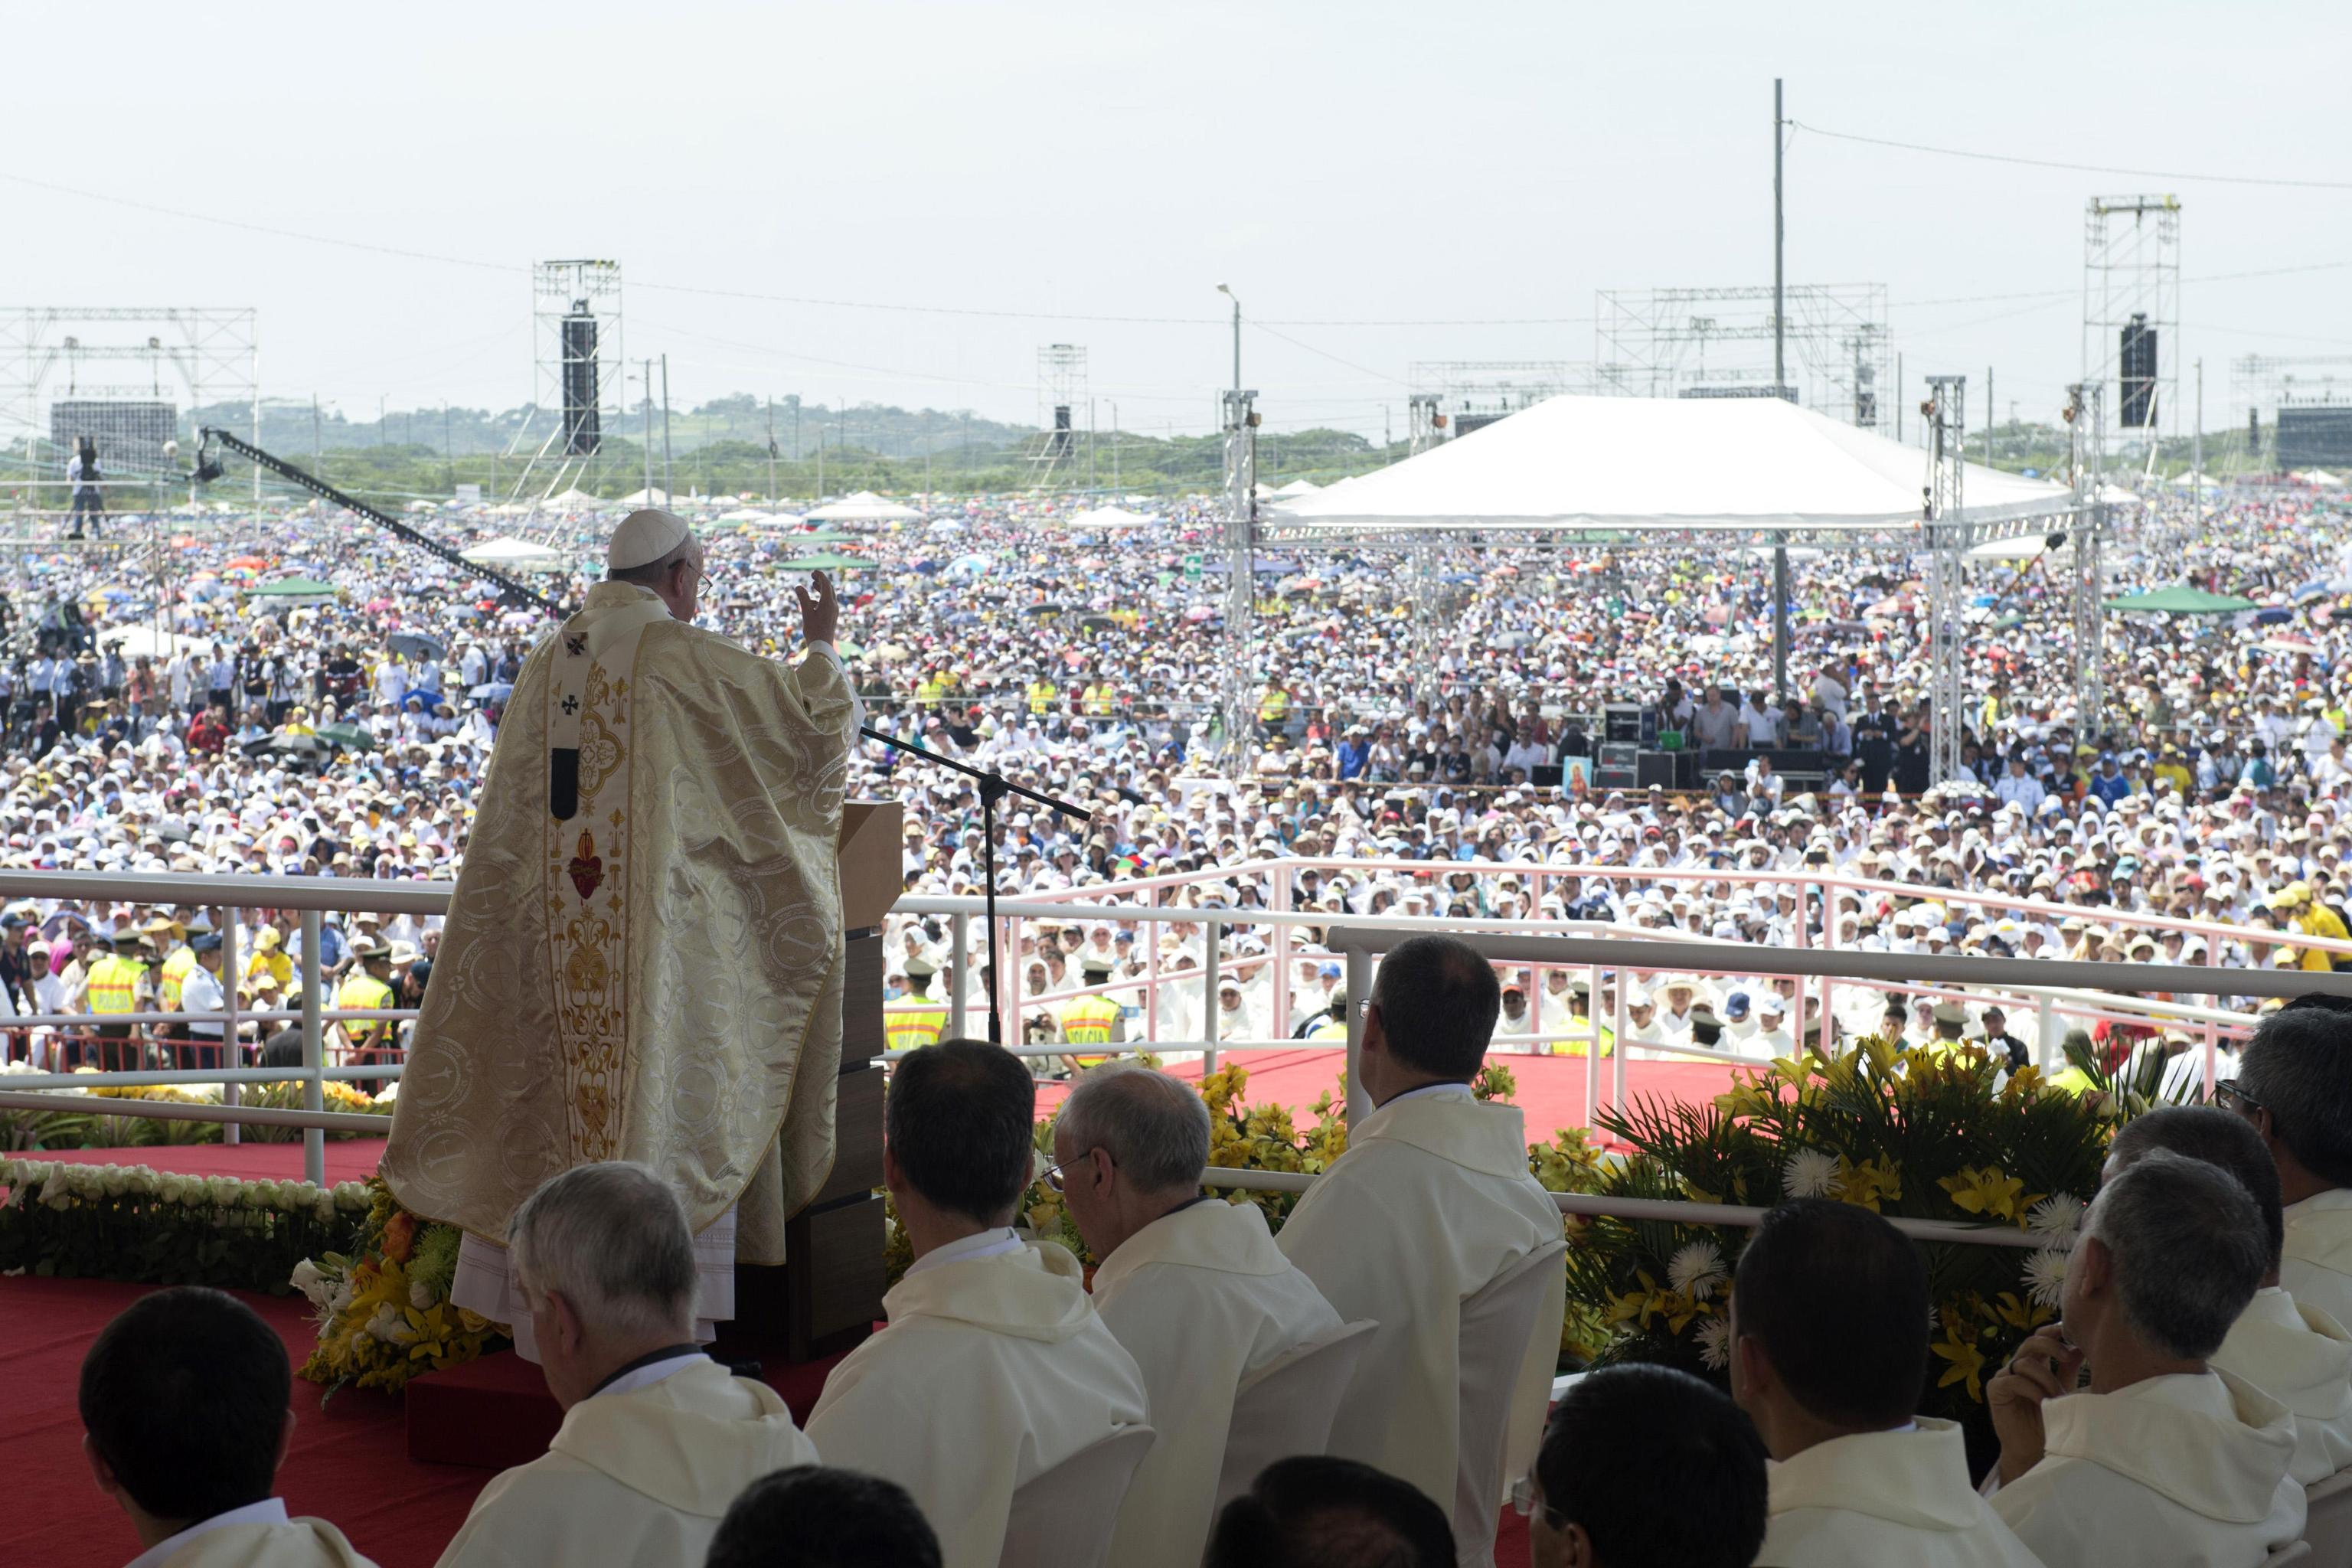 Pope Francis in Ecuador. July 7th 2015. ANSA/OSSERVATORE ROMANO+++ ANSA PROVIDES ACCESS TO THIS HANDOUT PHOTO TO BE USED SOLELY TO ILLUSTRATE NEWS REPORTING OR COMMENTARY ON THE FACTS OR EVENTS DEPICTED IN THIS IMAGE; NO ARCHIVING; NO LICENSING +++